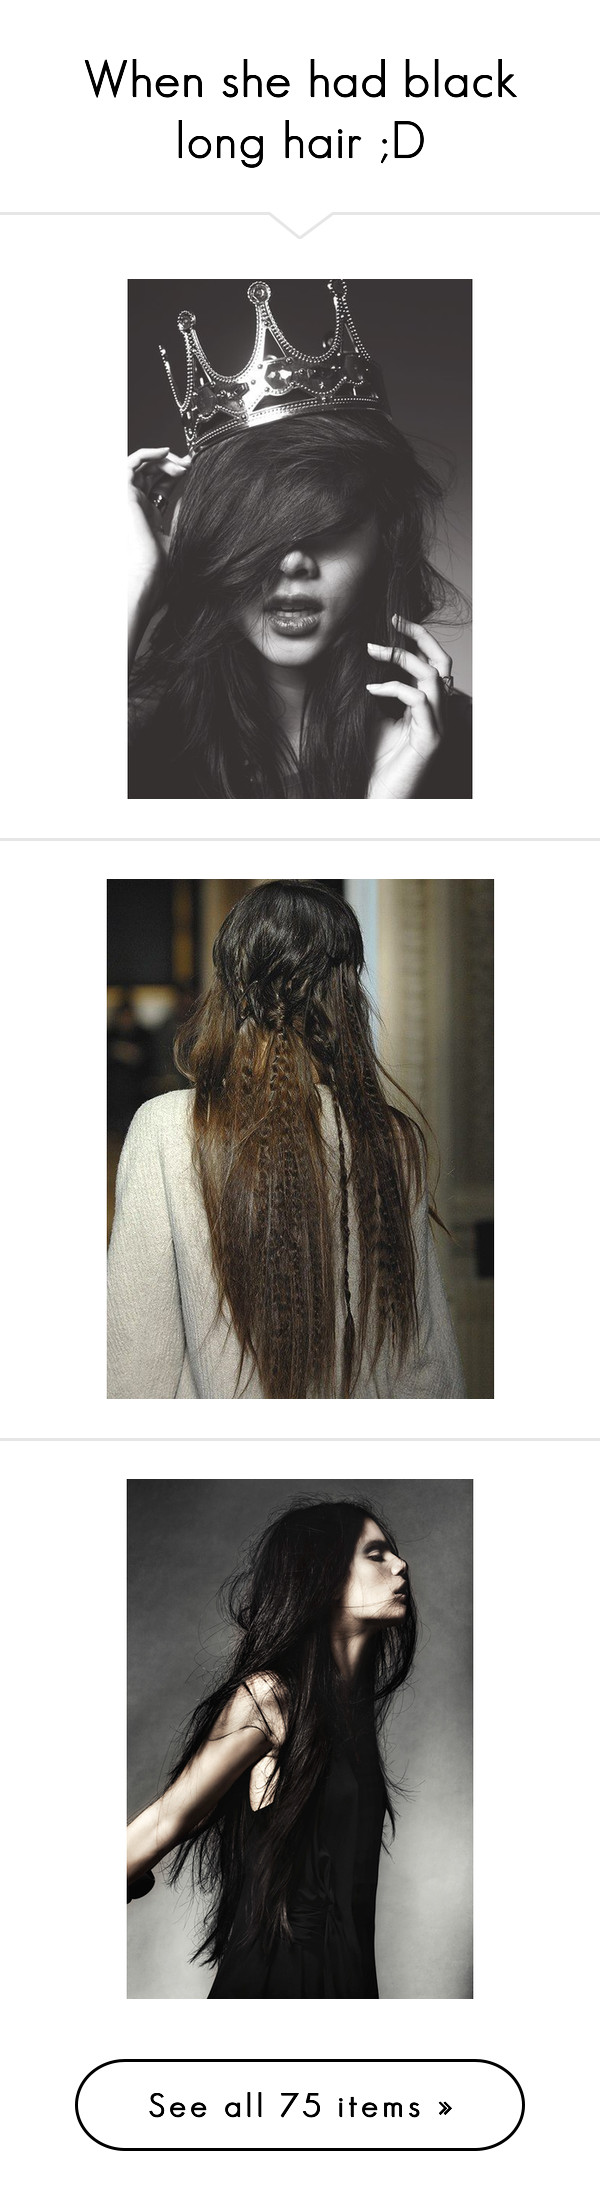 """""""When she had black long hair ;D"""" by lunaashton ❤ liked on Polyvore featuring beauty products, haircare, people, pictures, hair styling tools, hair, backgrounds, hairstyles, cabelos and hair styles"""